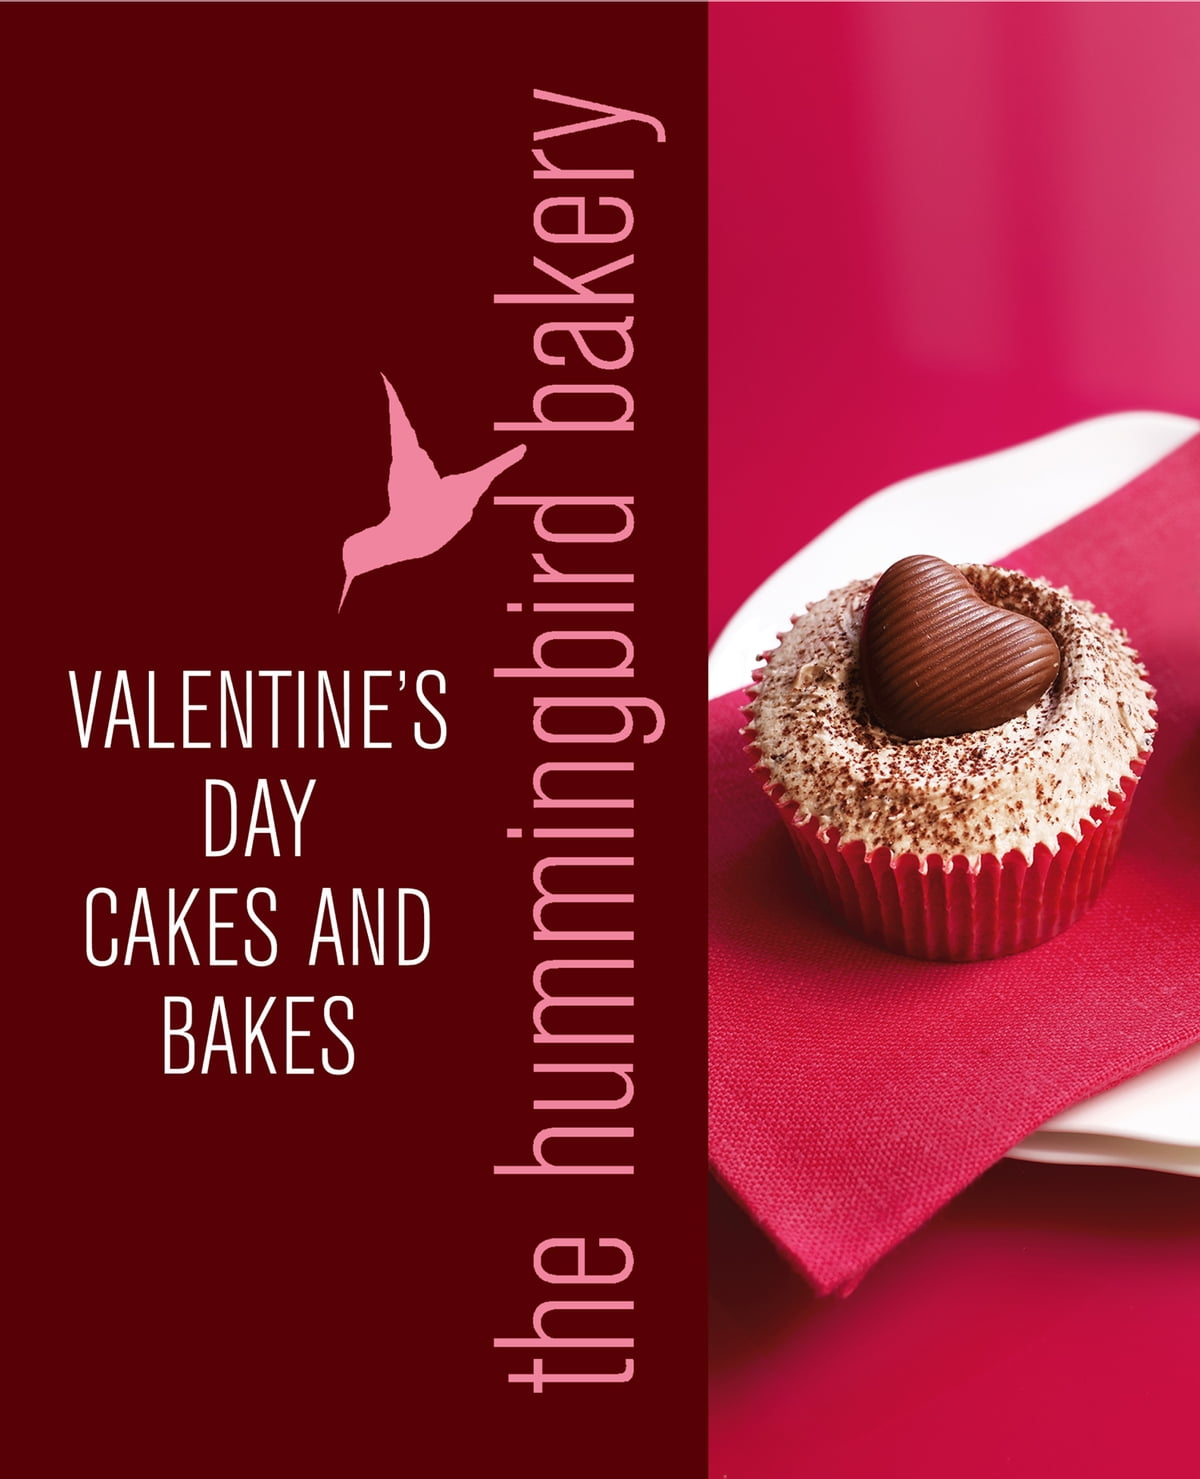 Hummingbird Bakery Valentines Day Cakes And Bakes An Extract From